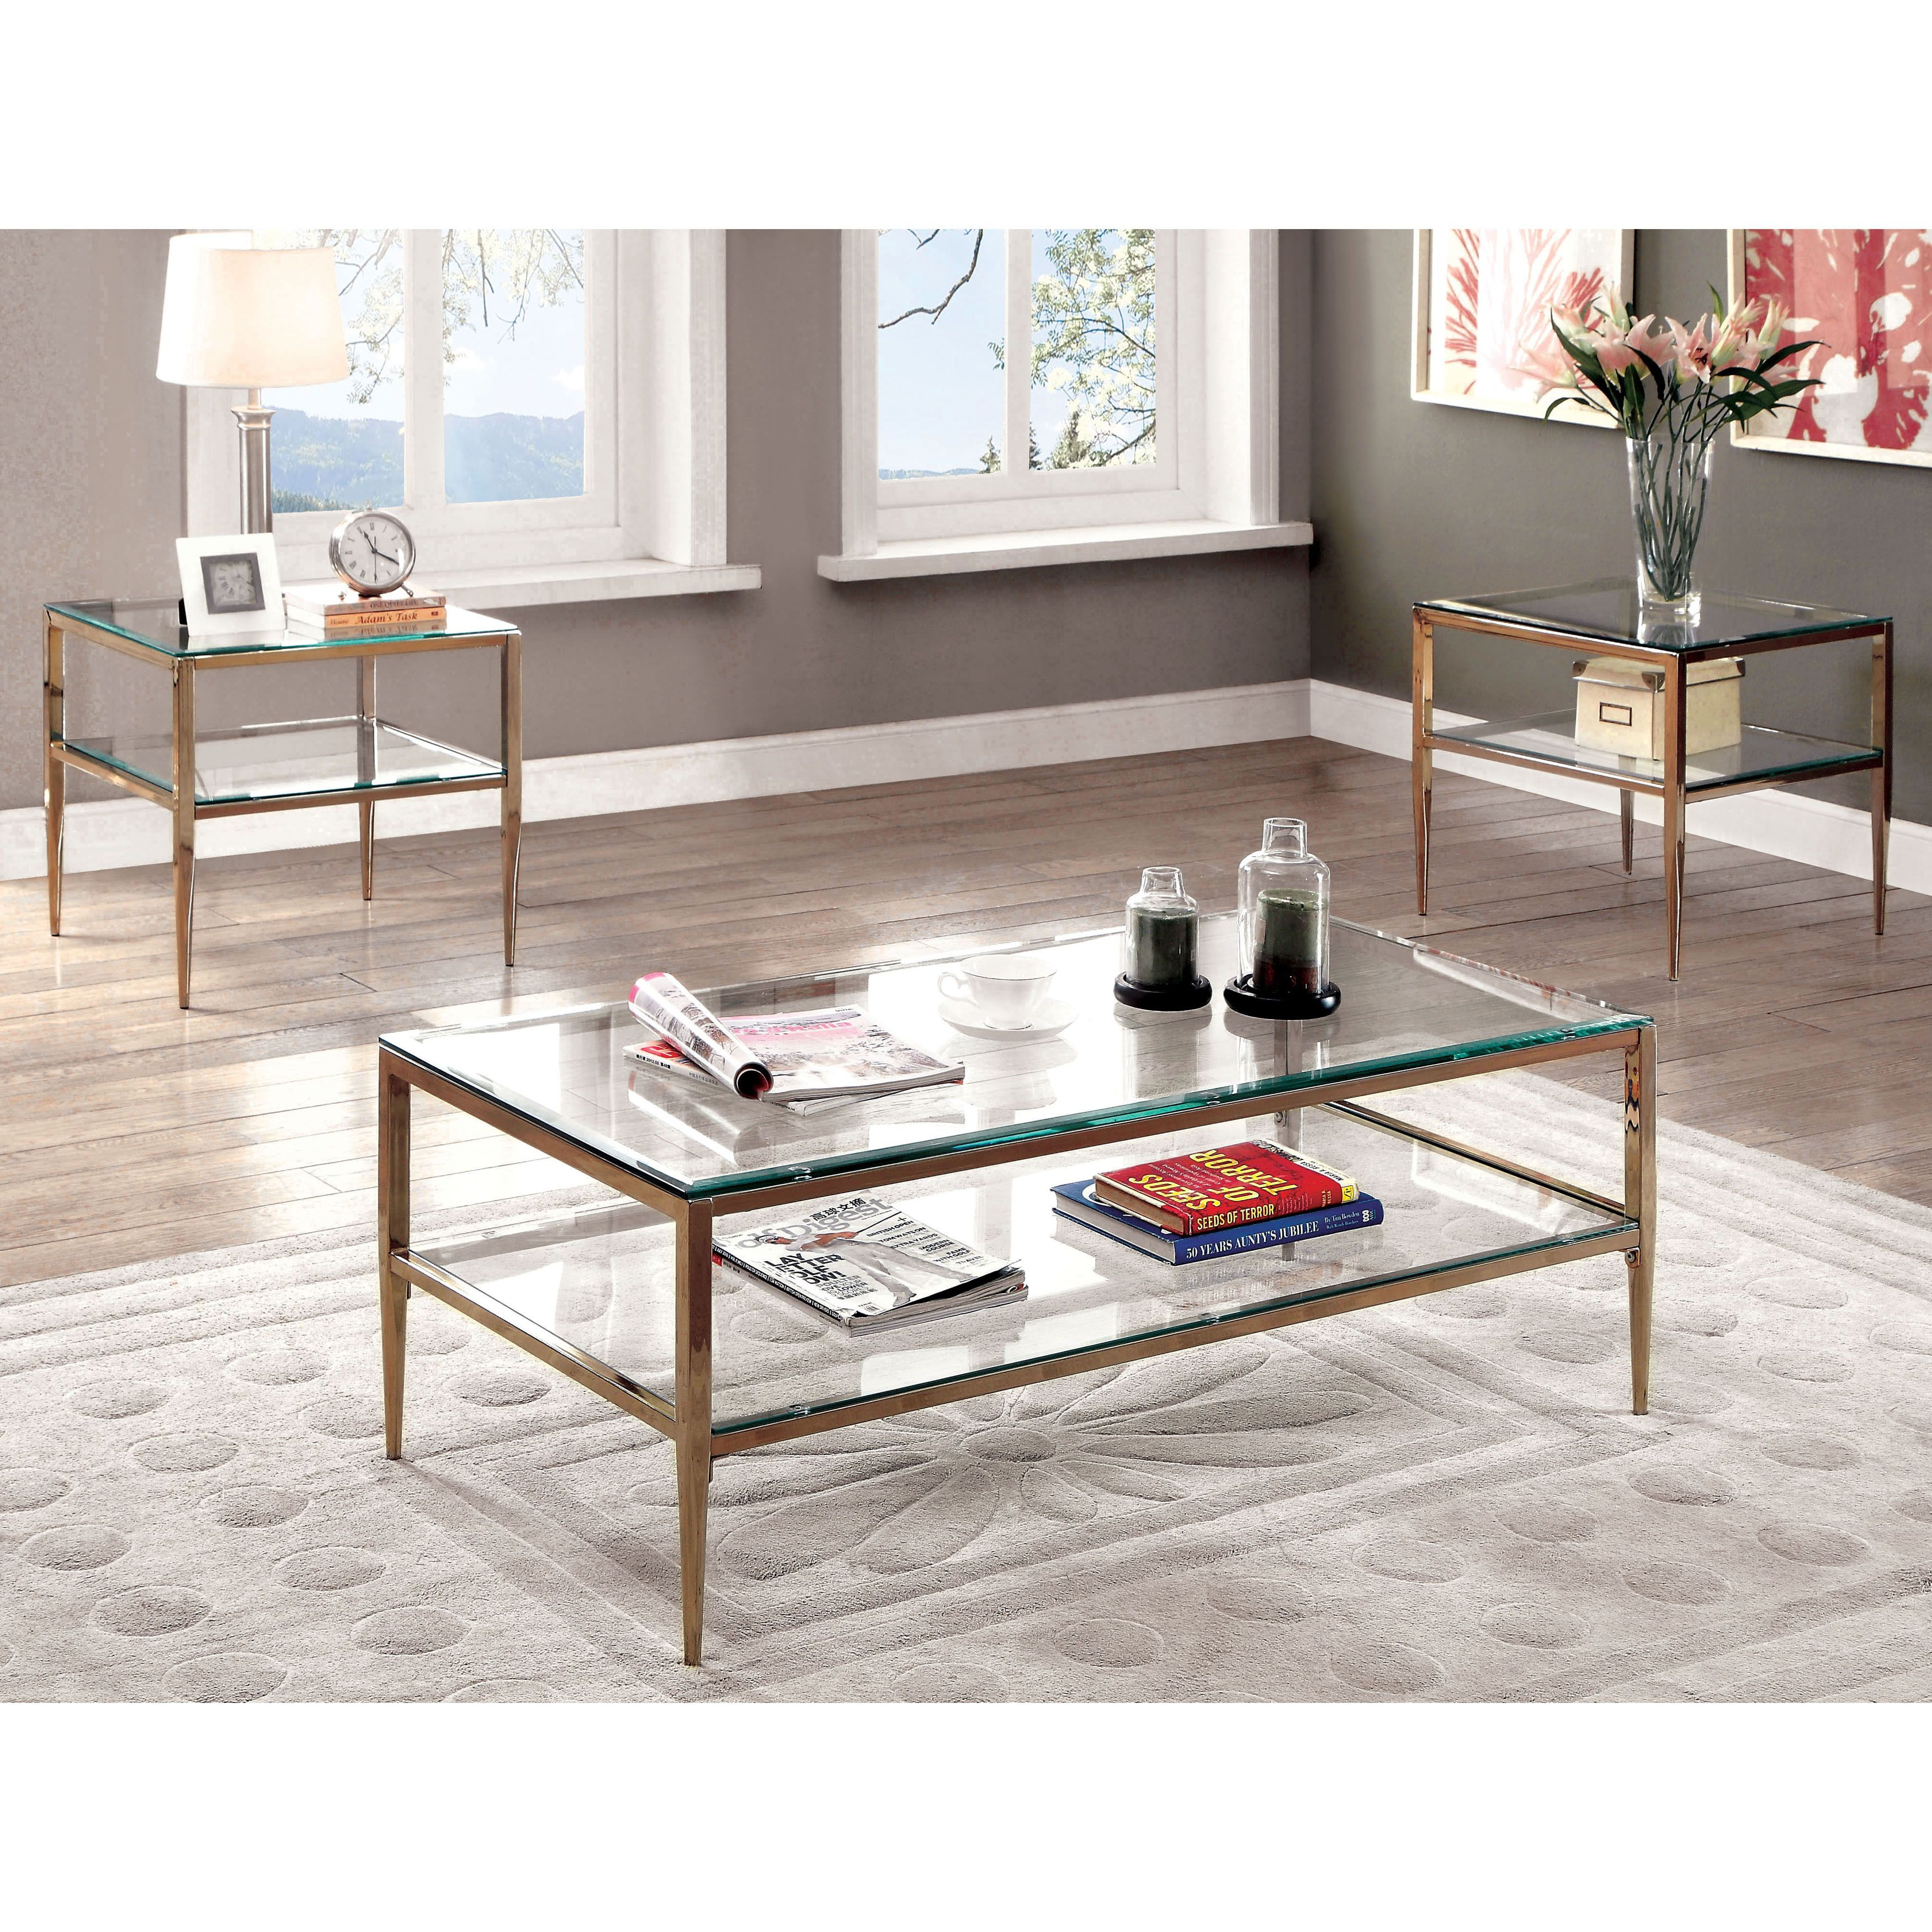 Overstock Com Online Shopping Bedding Furniture Electronics Jewelry Clothing More Coffee Table Accent Table Sets Glass Top Coffee Table [ 3500 x 3500 Pixel ]